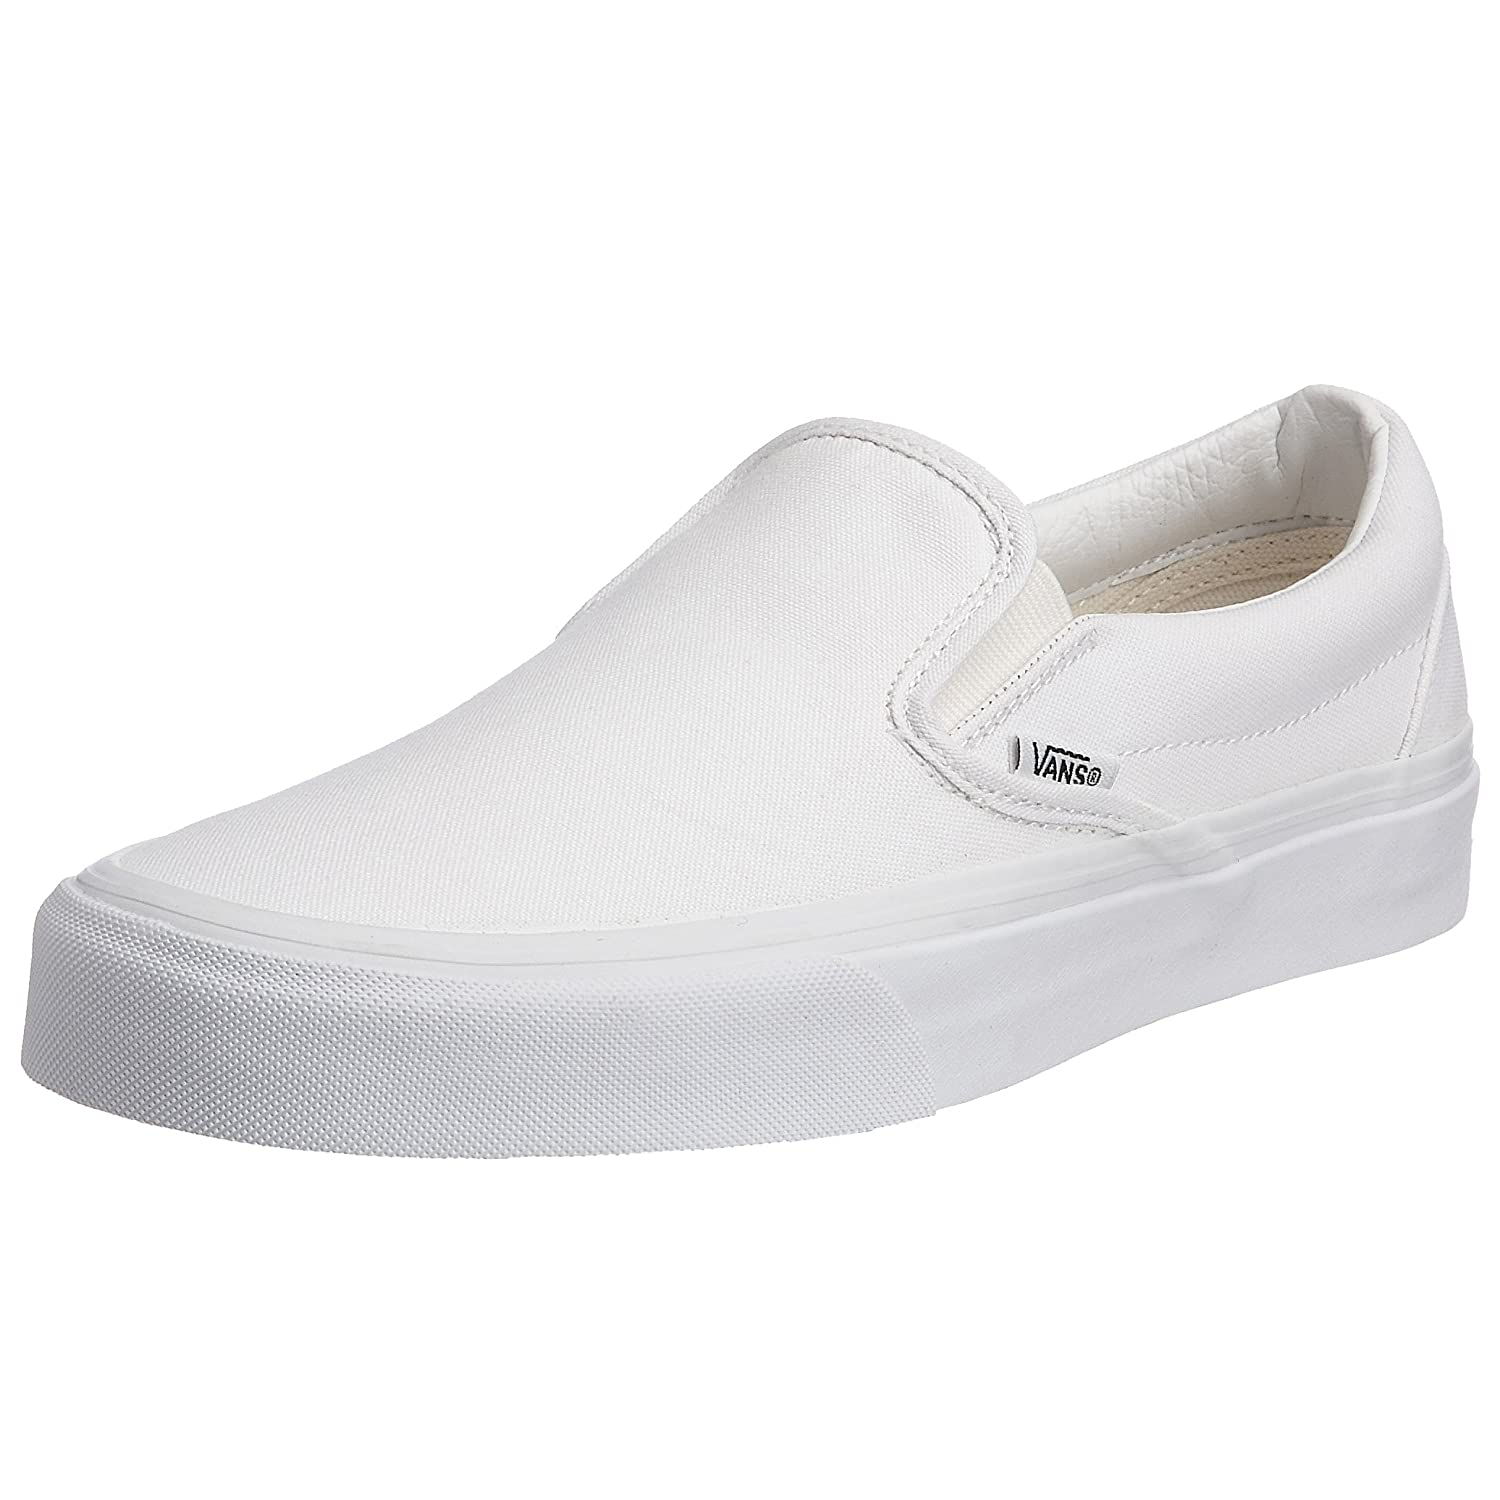 Vans Unisex Erwachsene Classic Slip on Canvas Low Top, weiß, D(M)